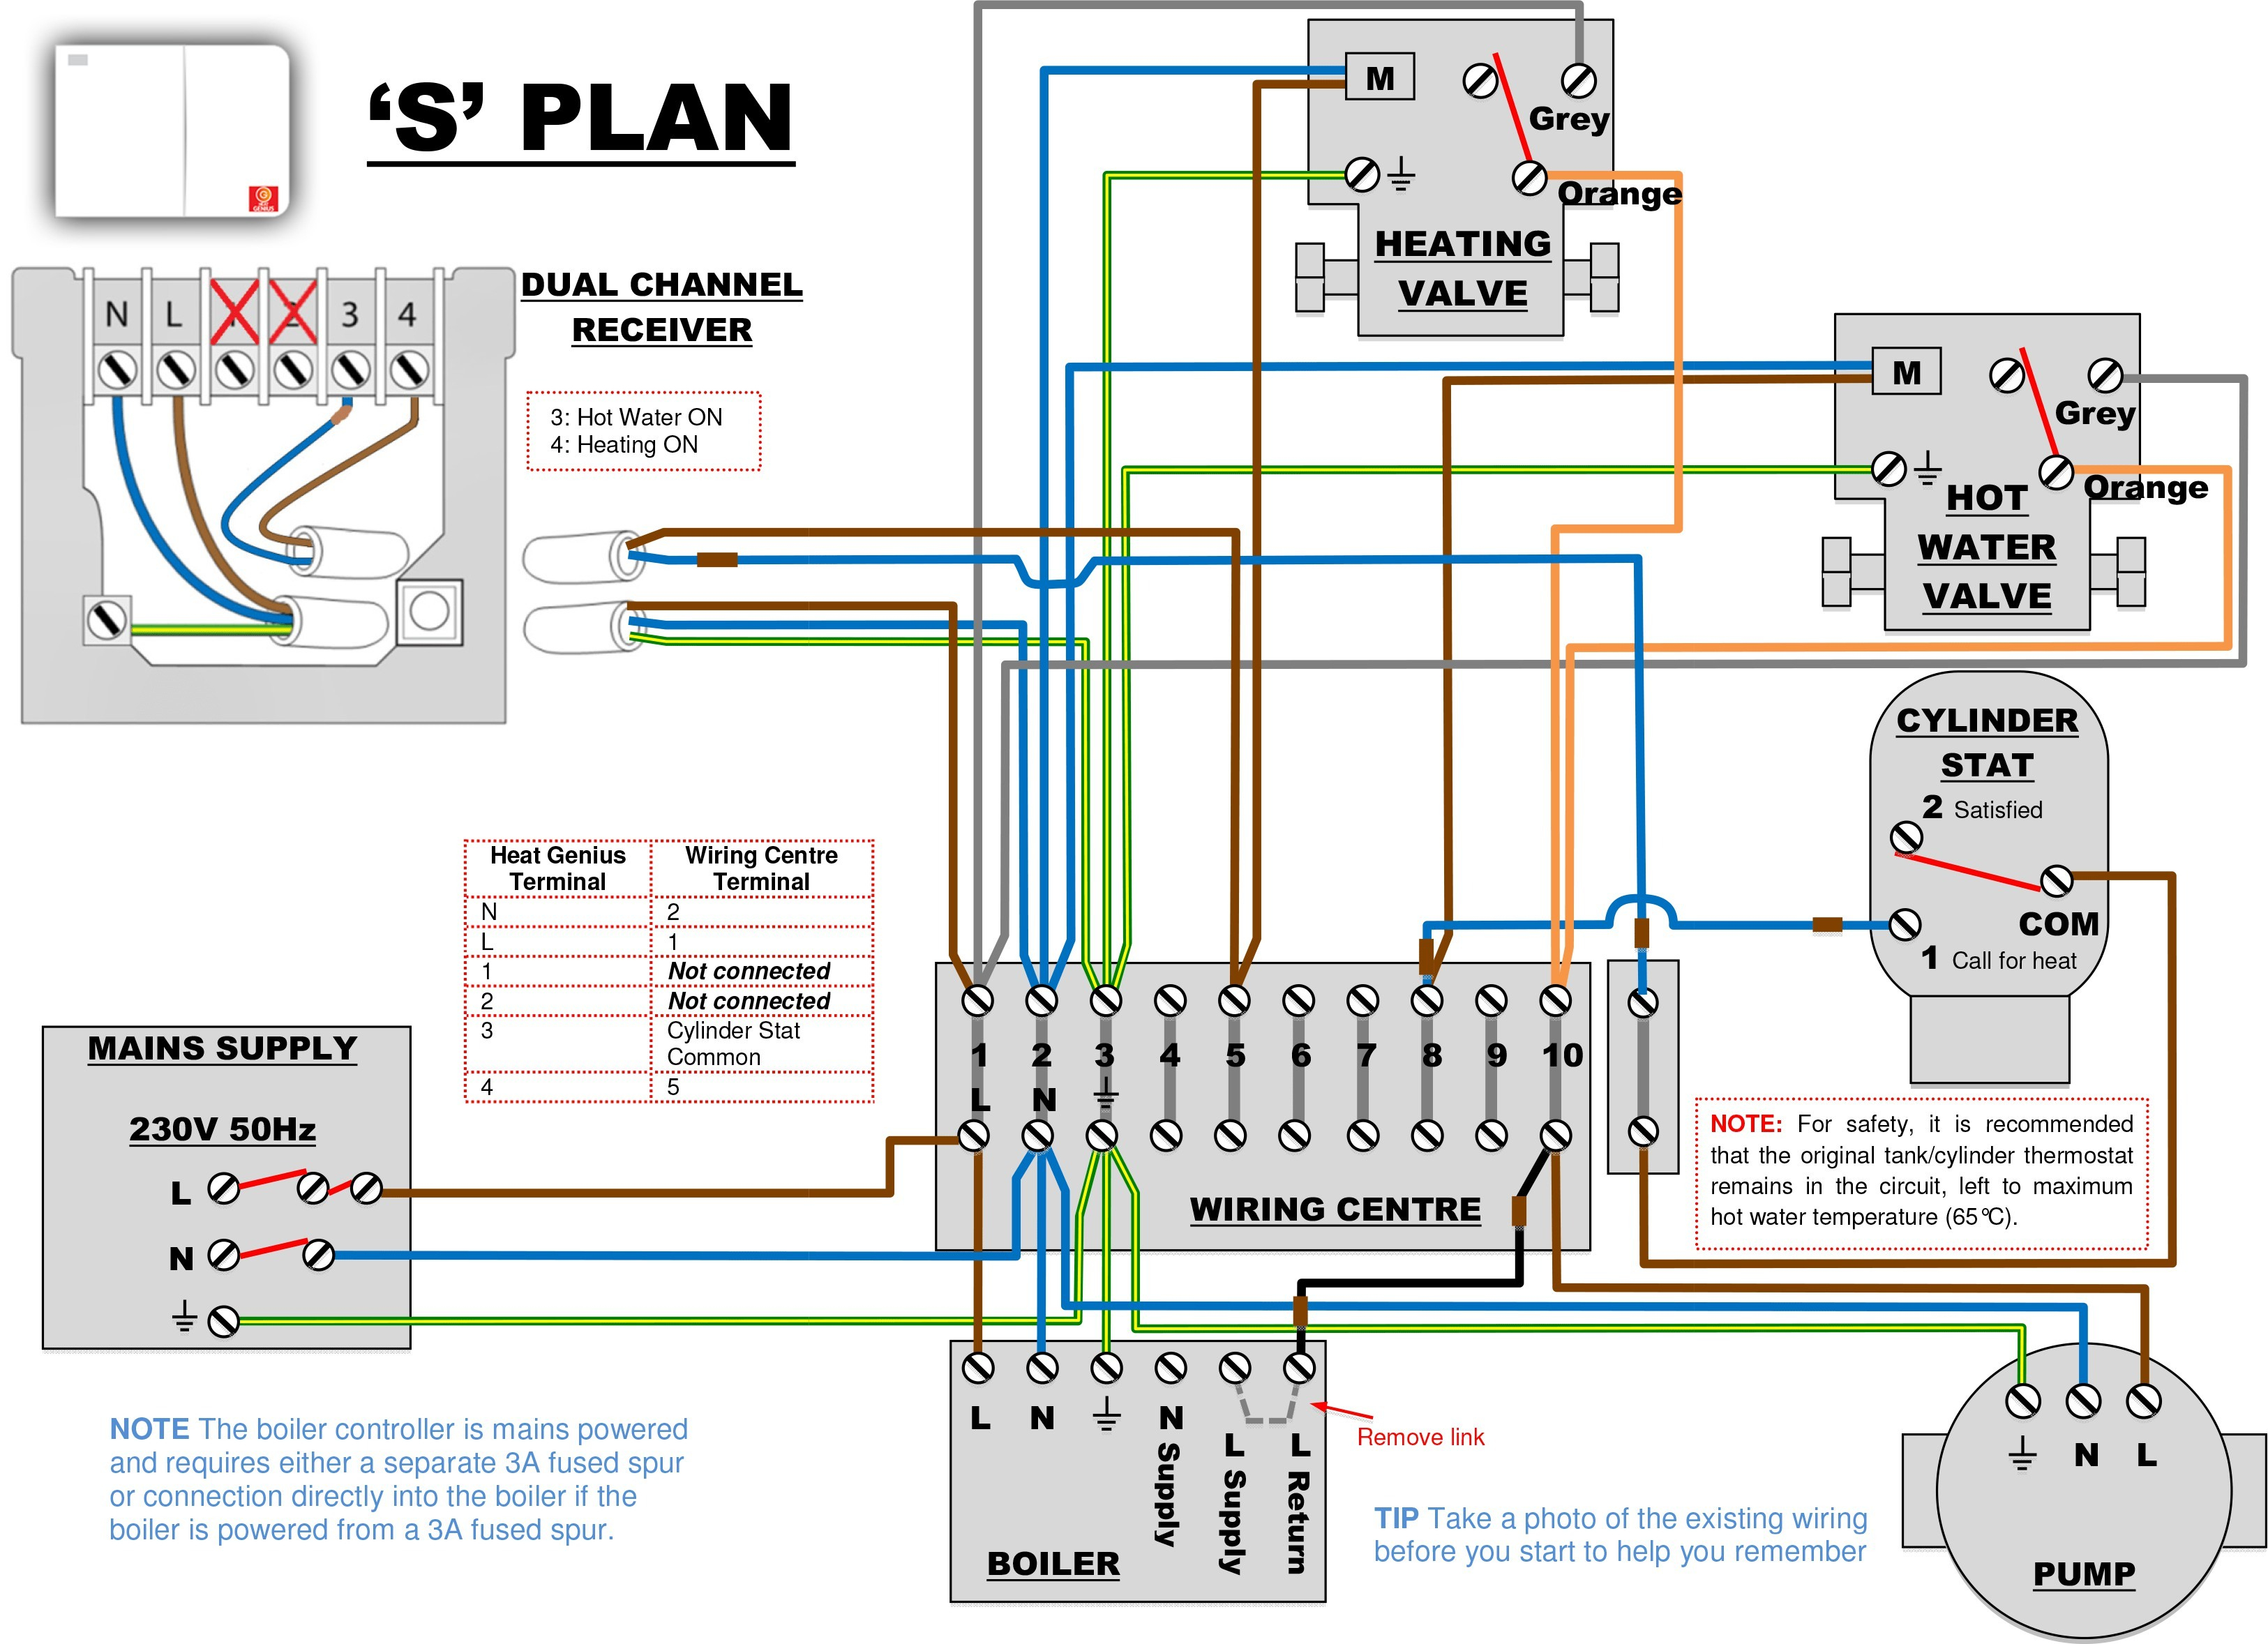 nest thermostat wiring diagram heat pump download wiring diagram thermostat wiring color code nest thermostat wiring diagram heat pump download heat pump thermostat wiring diagram new nest thermostat download wiring diagram